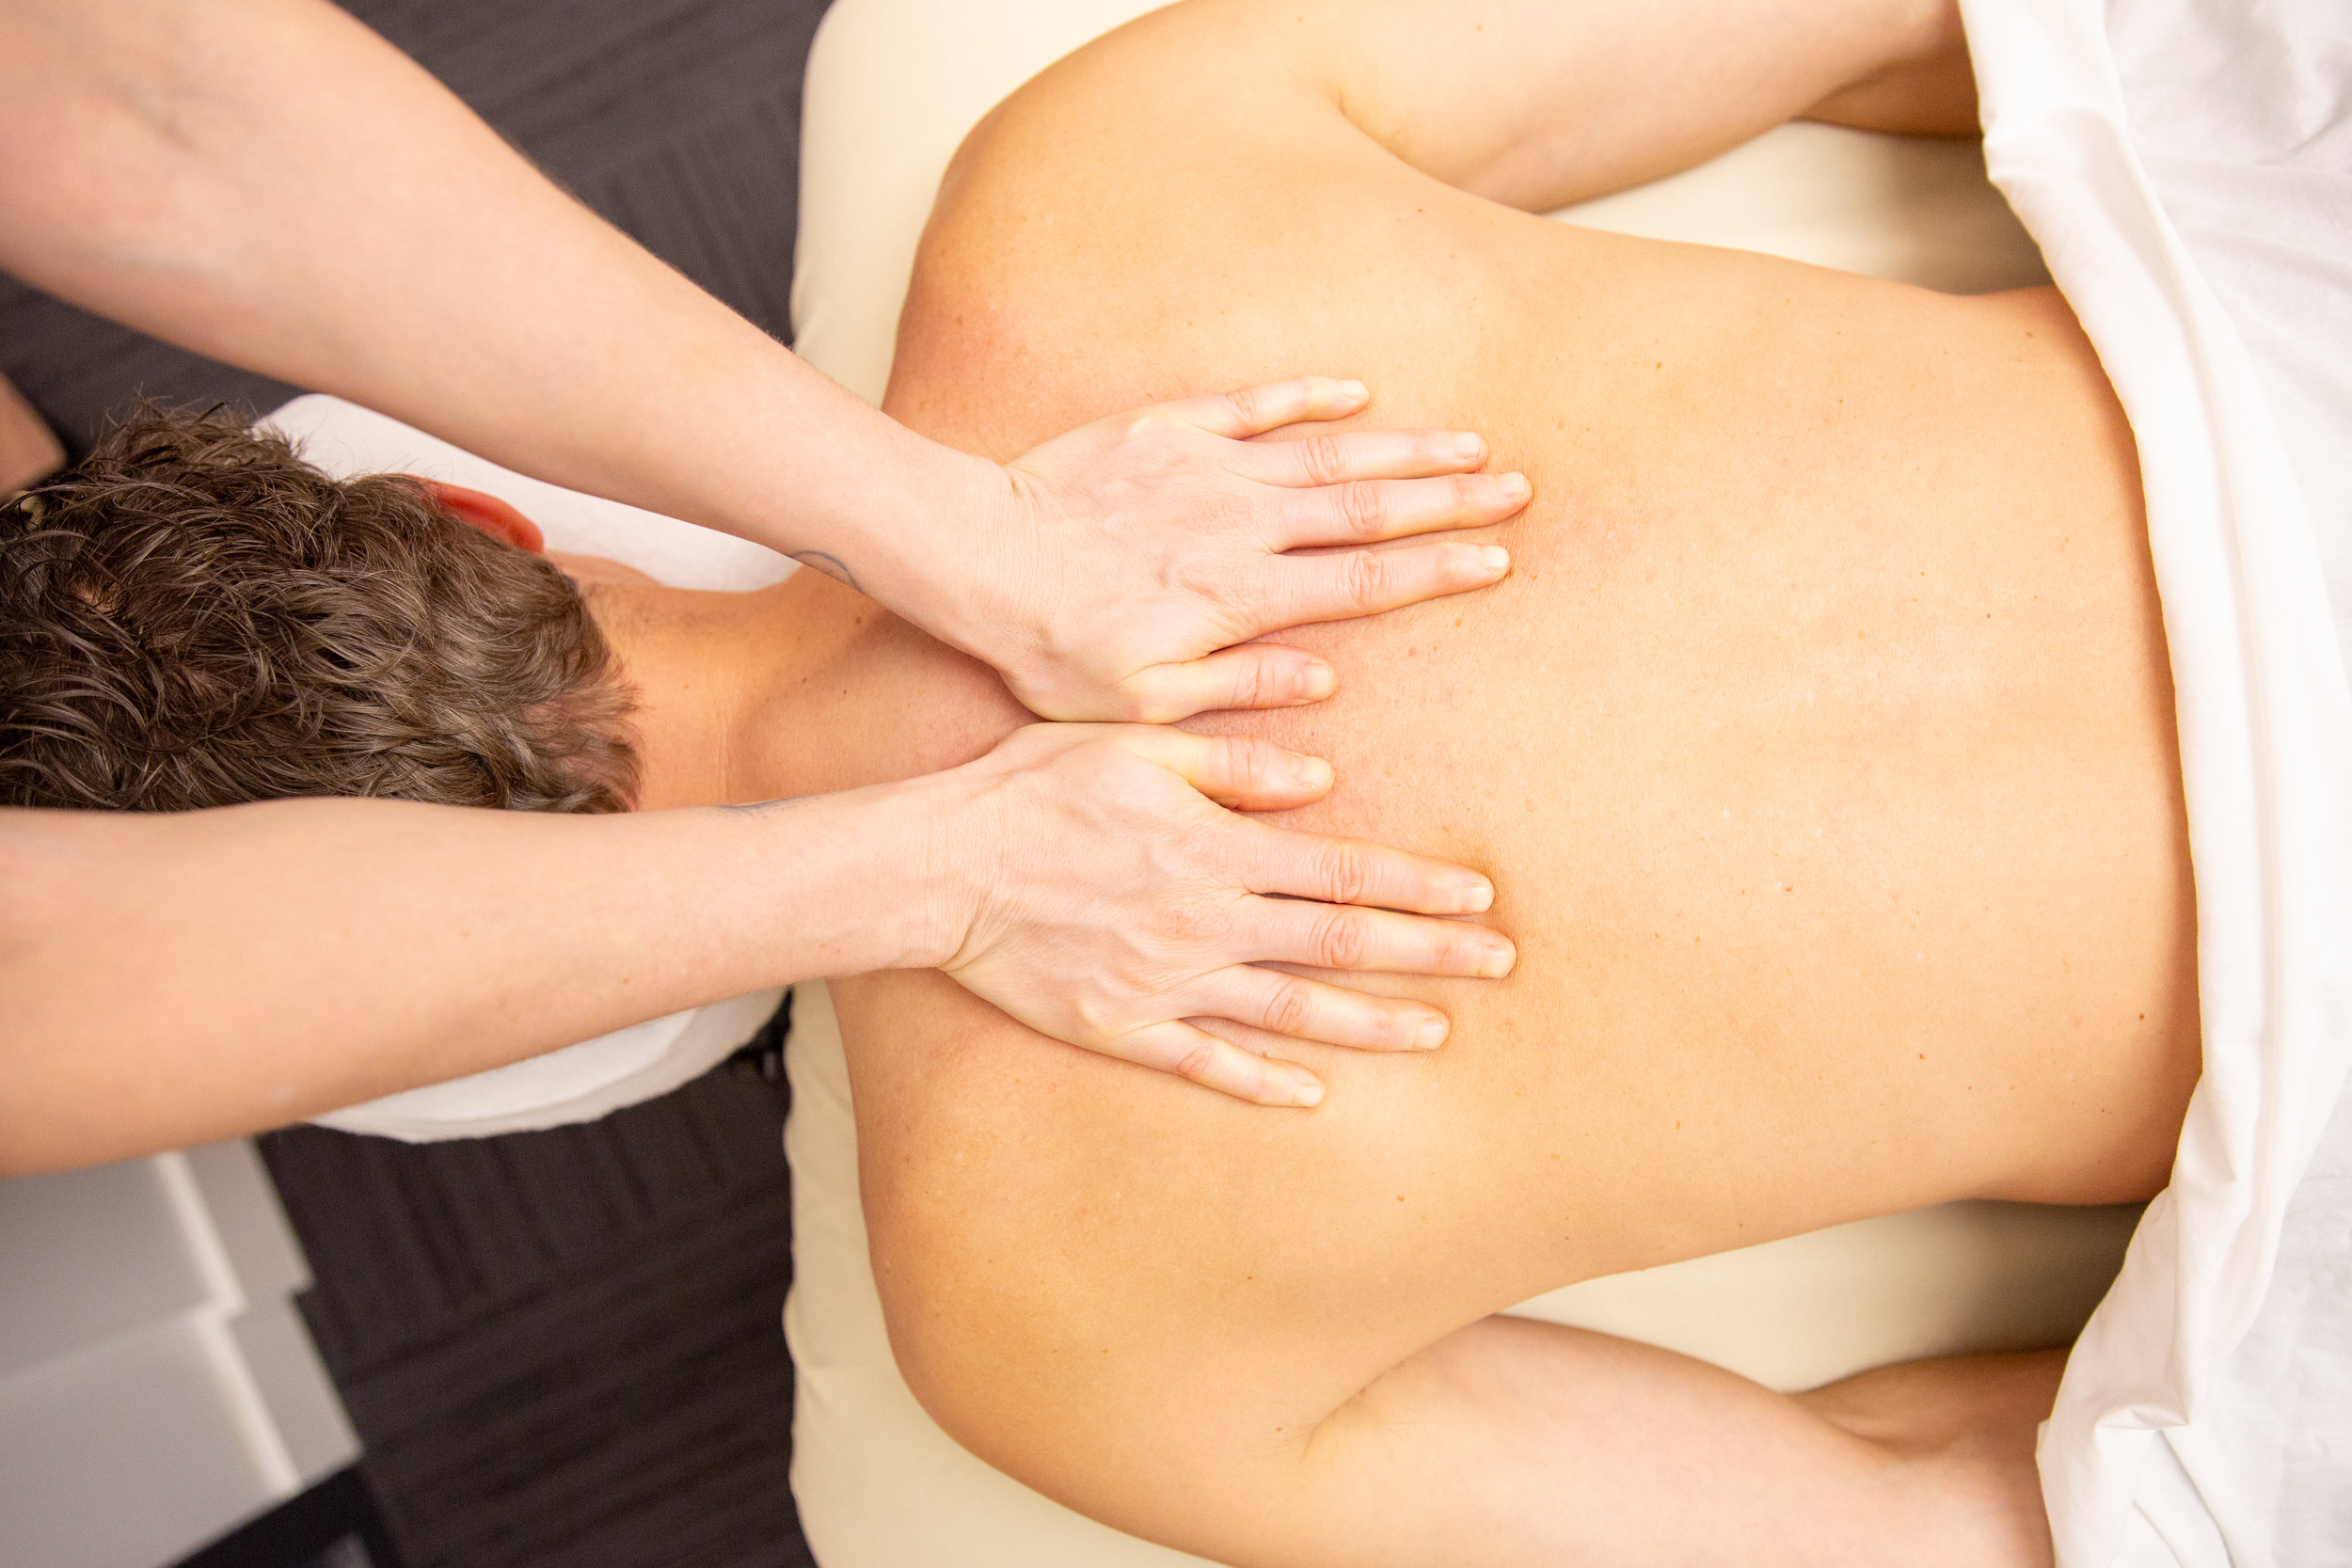 REGISTERED MASSAGE THERAPY   Massage therapy decreases stress and helps control pain.